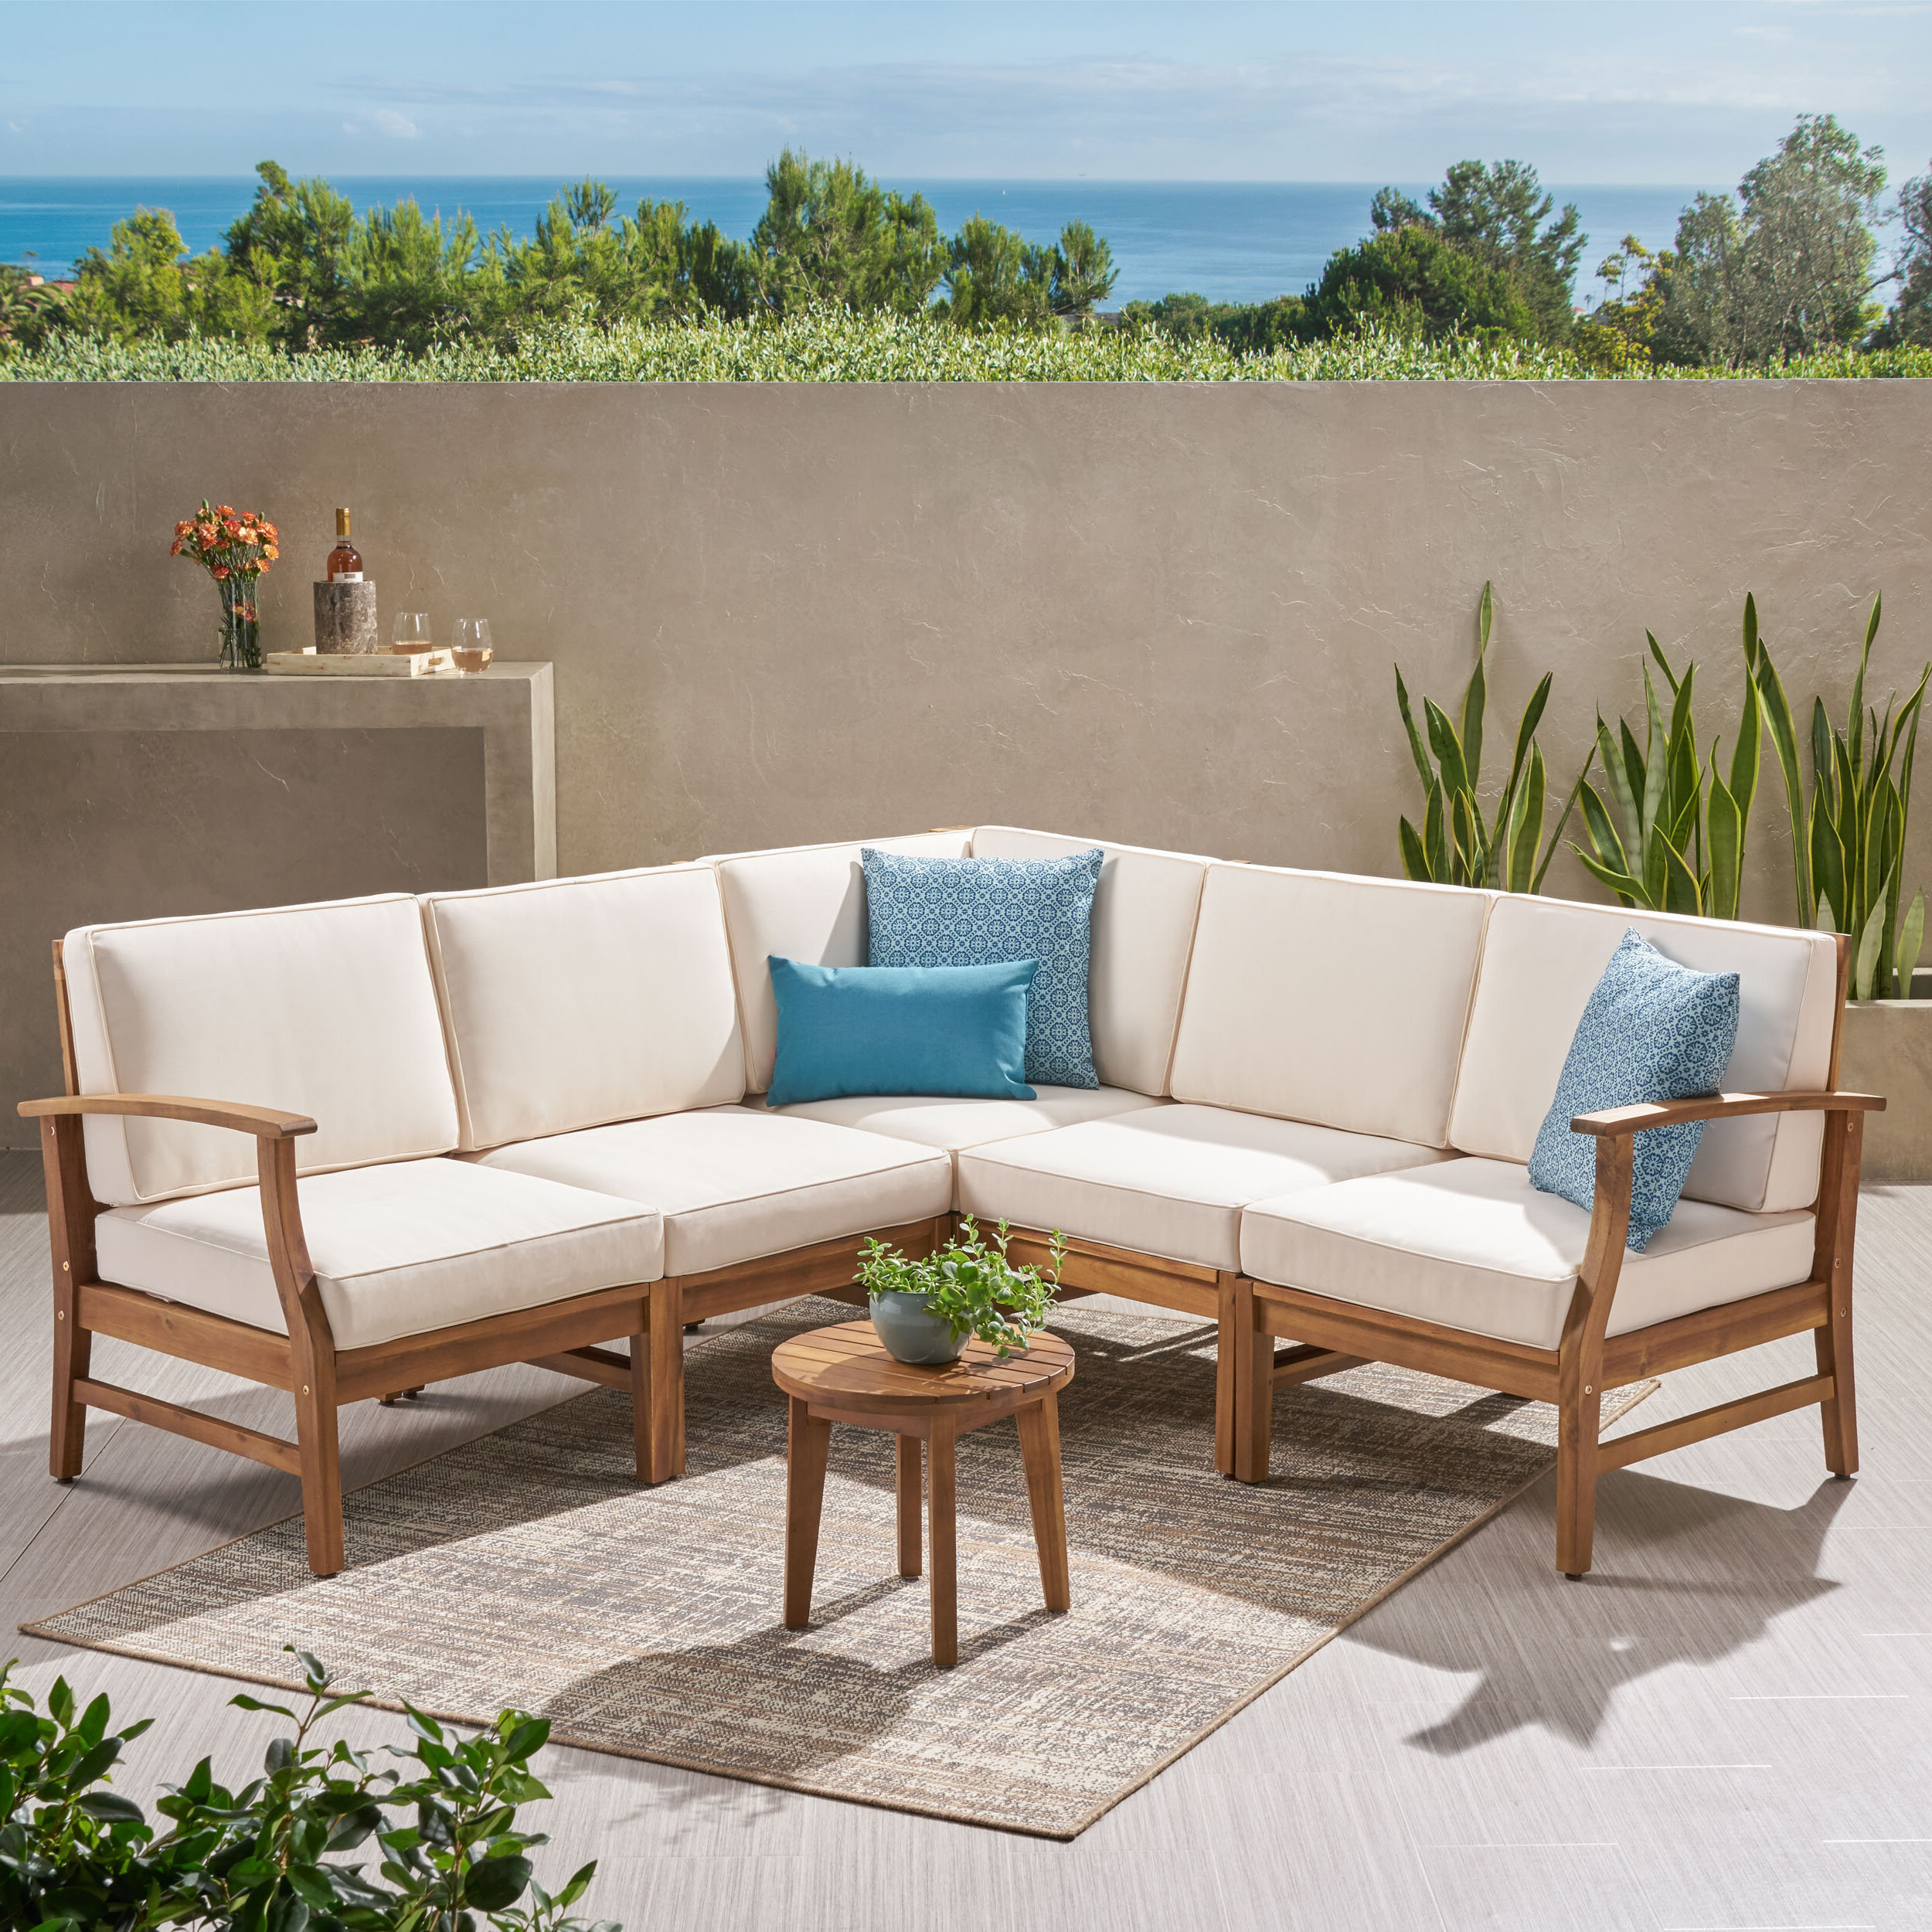 Antonia Teak Patio Sectionals With Cushions With Trendy Antonia Teak Patio Sectional With Cushions (Gallery 5 of 25)